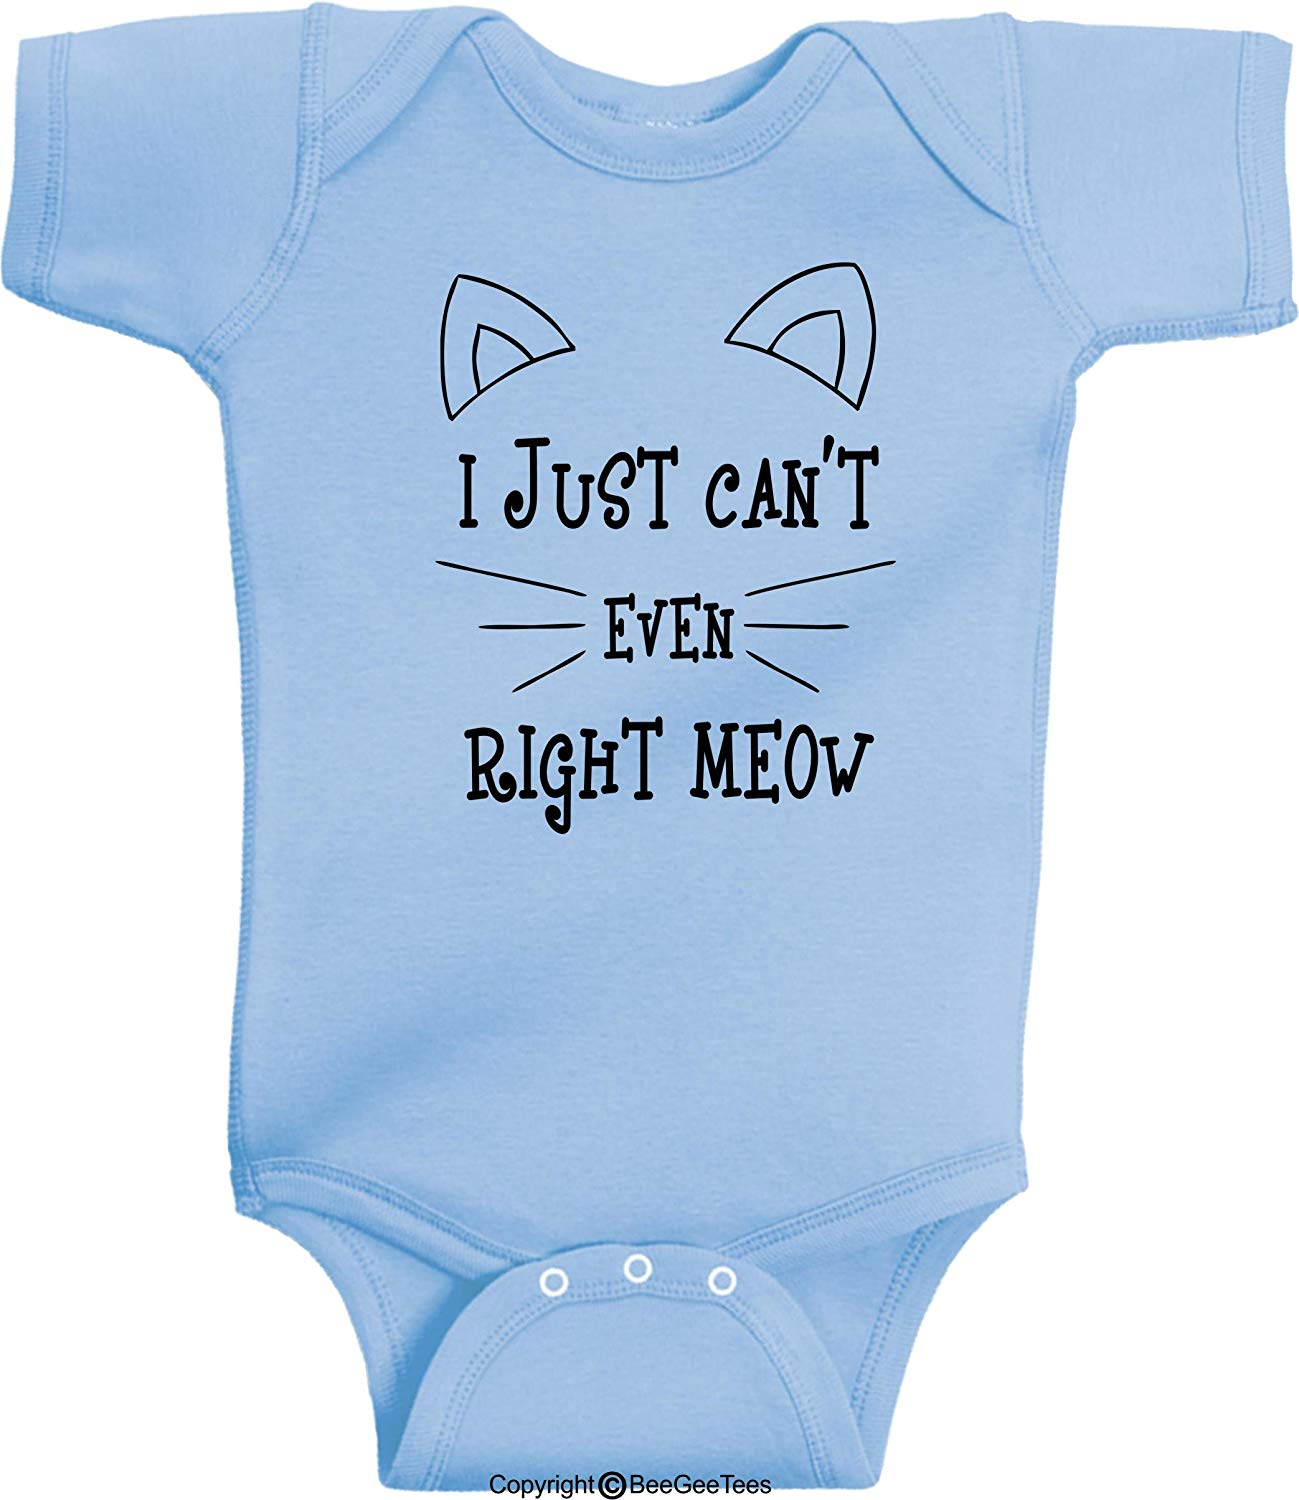 I Just Can't Even Right Meow Funny Cat Baby Bodysuit Hipster Gift by BeeGeeTees